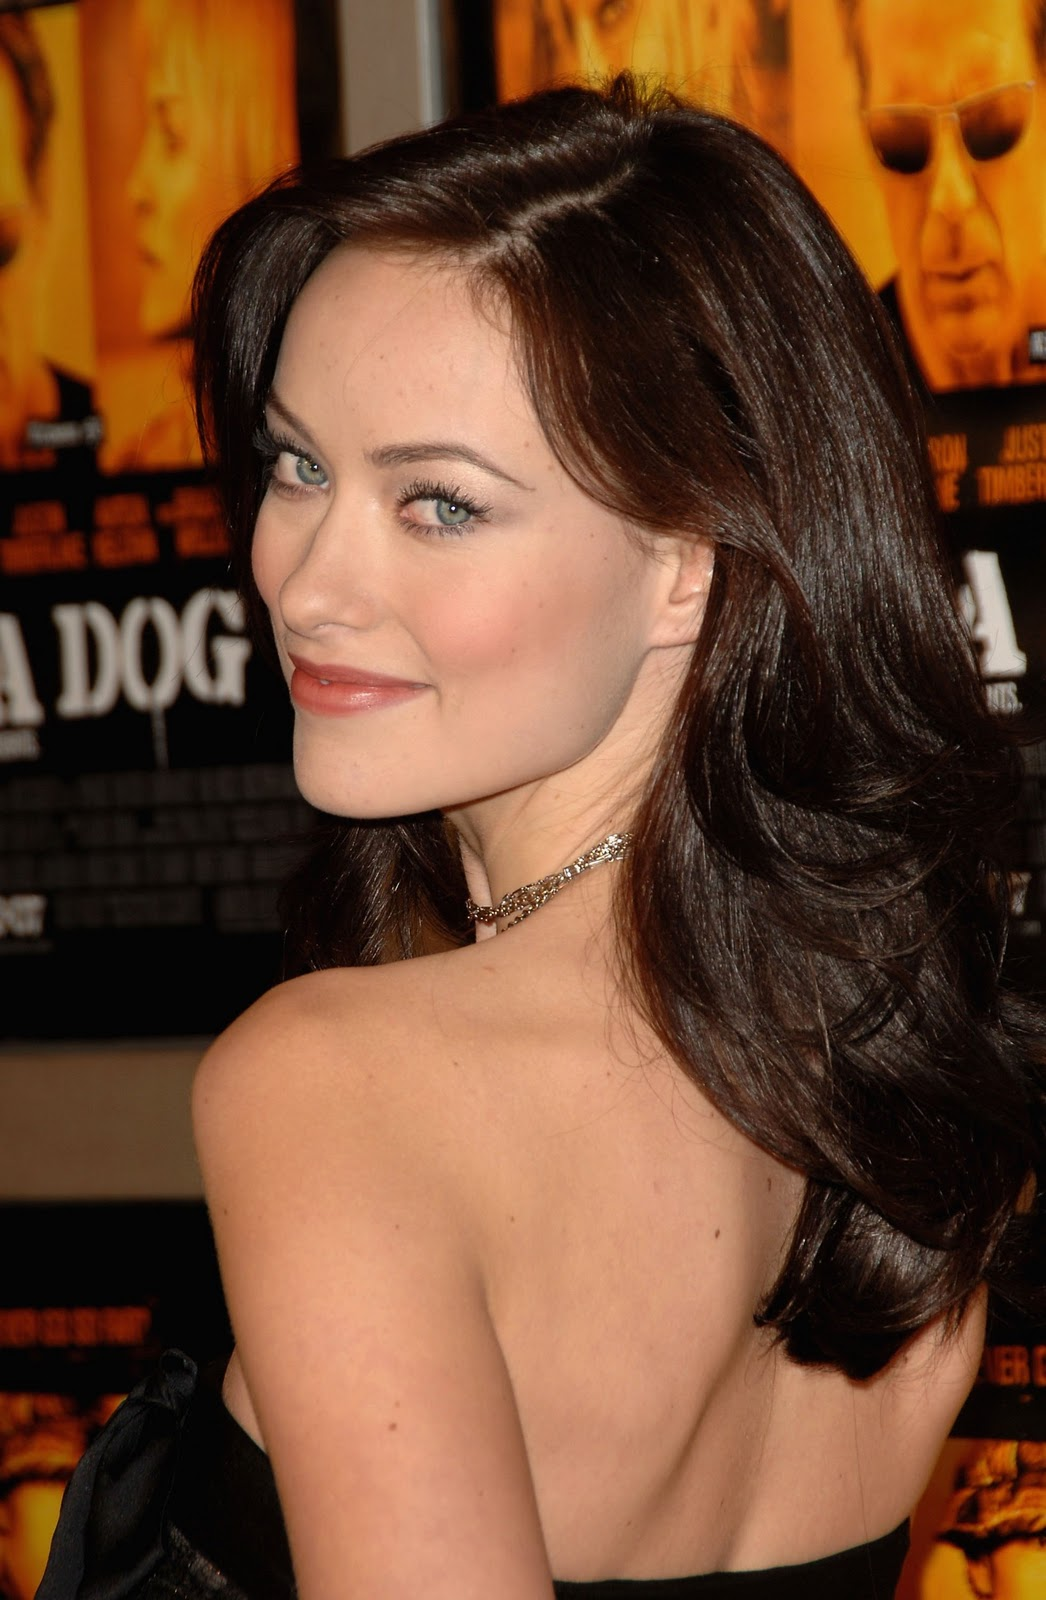 Olivia Wilde Profile And New Pictures 2013: Olivia Wilde Pictures Gallery (8)